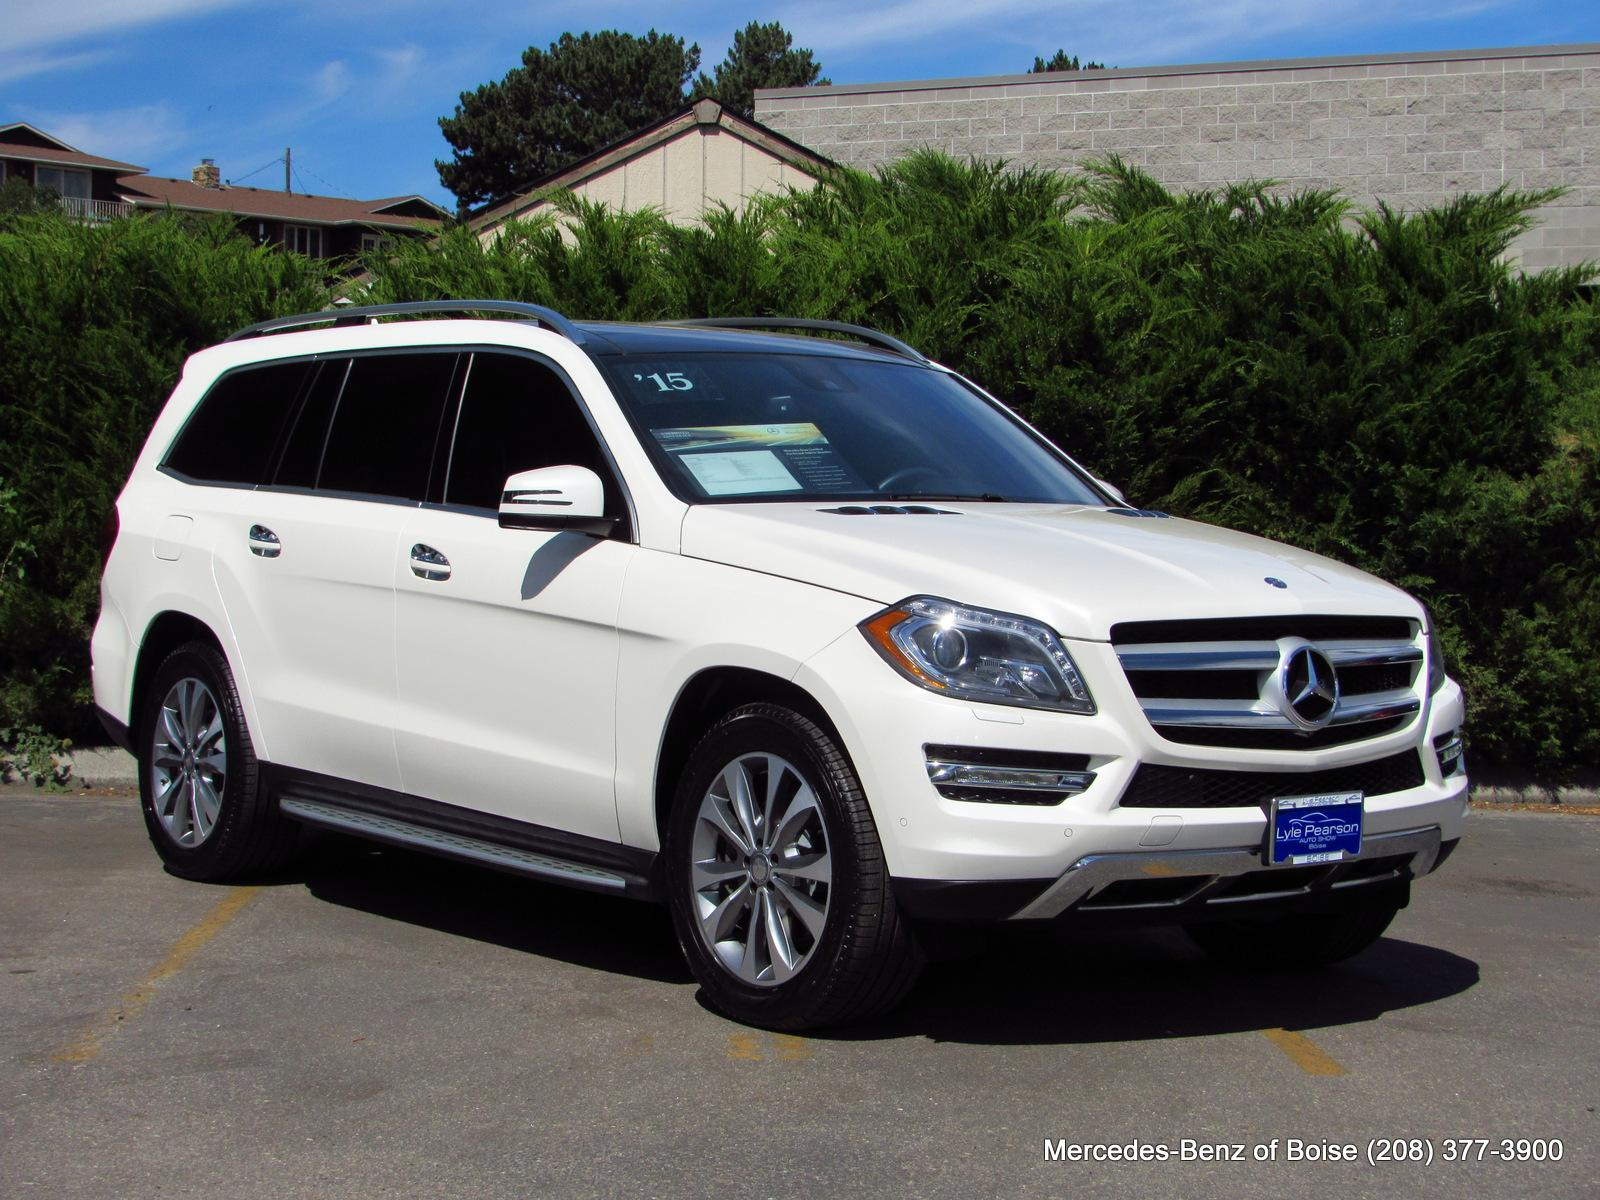 benz mercedes used suv gl pre owned stock certified ae inventory sport utility awd